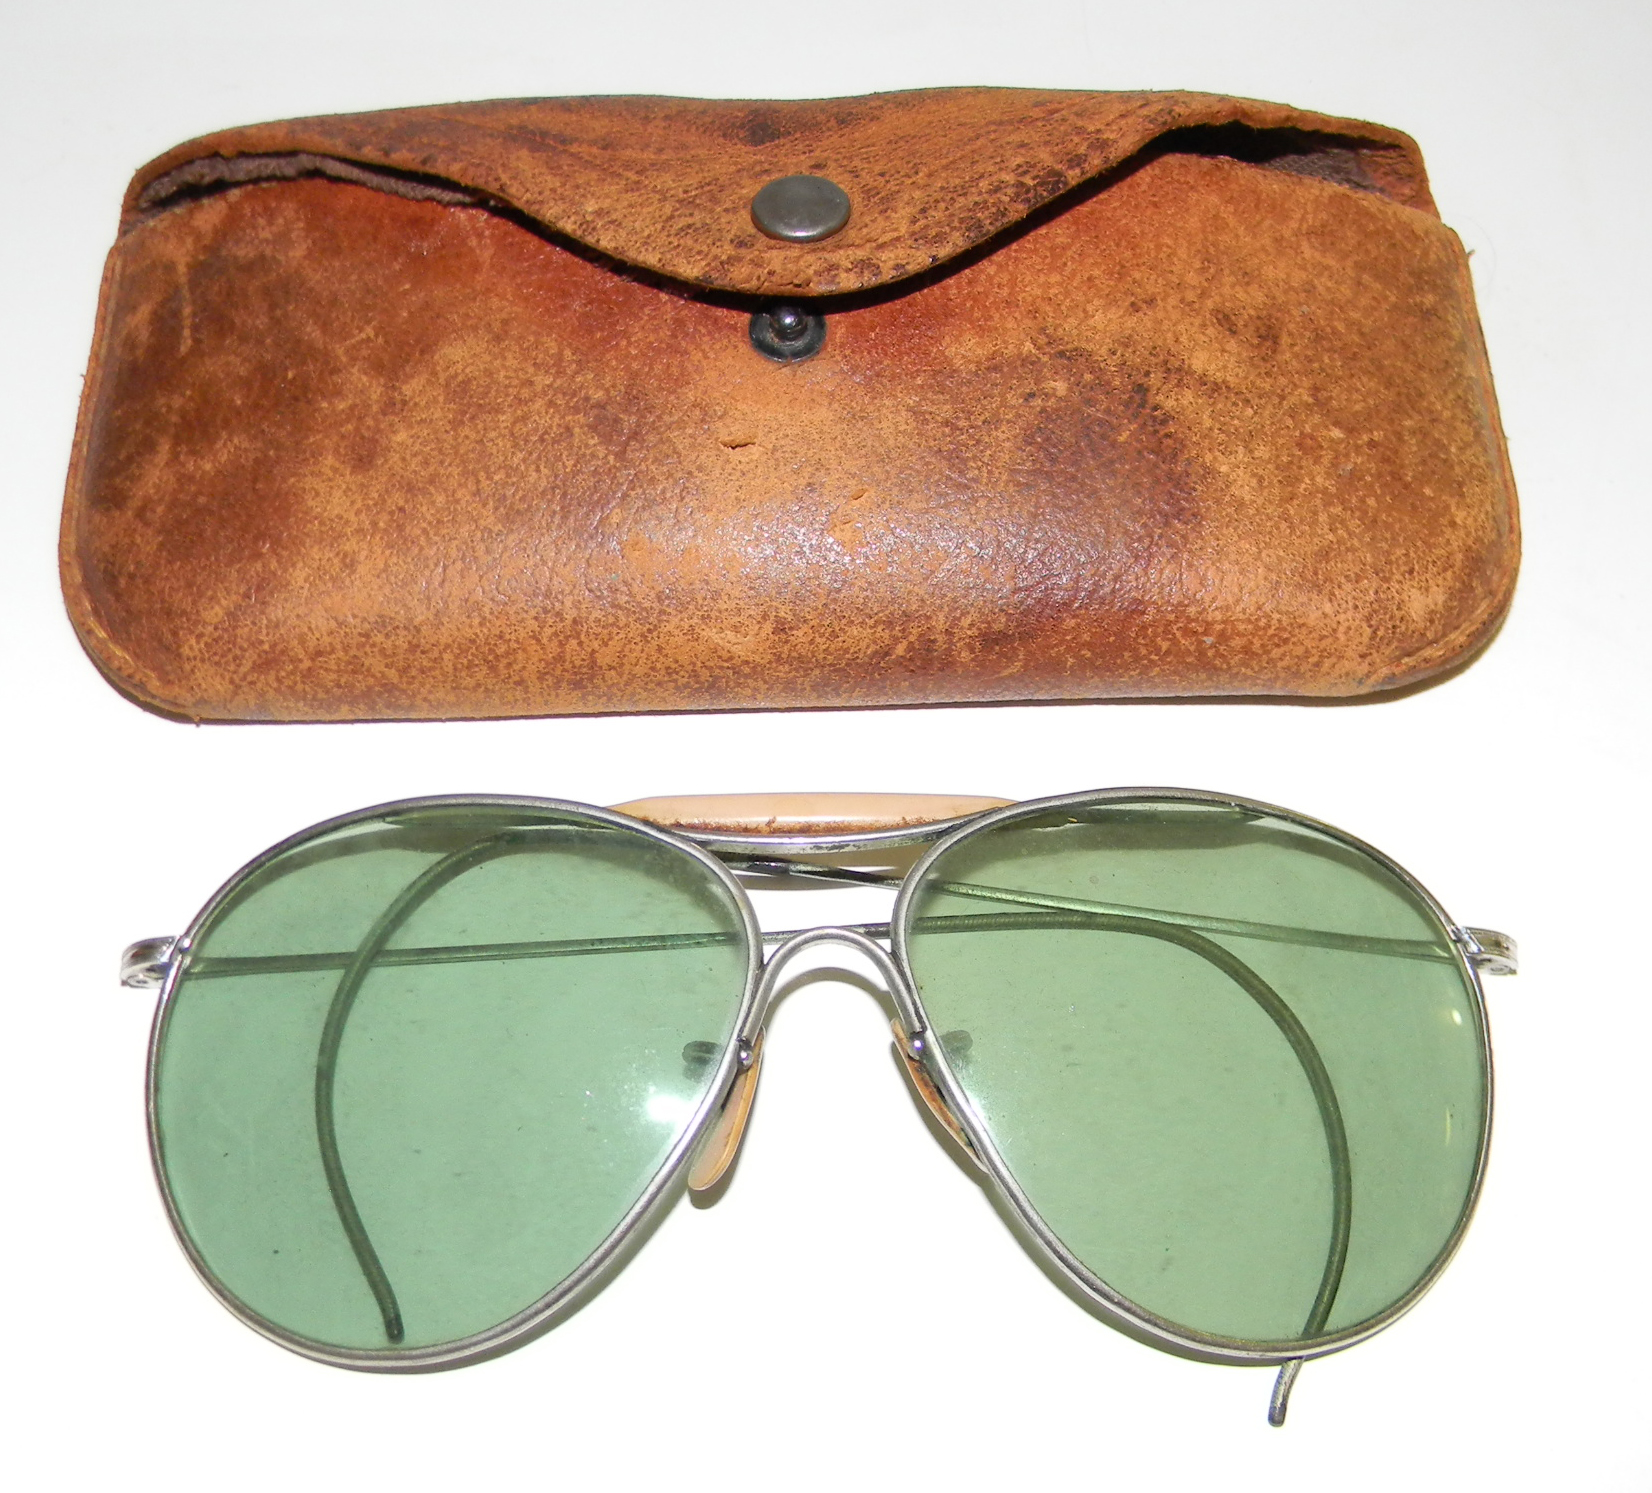 AAF Type AN6531 aircrew sunglasses